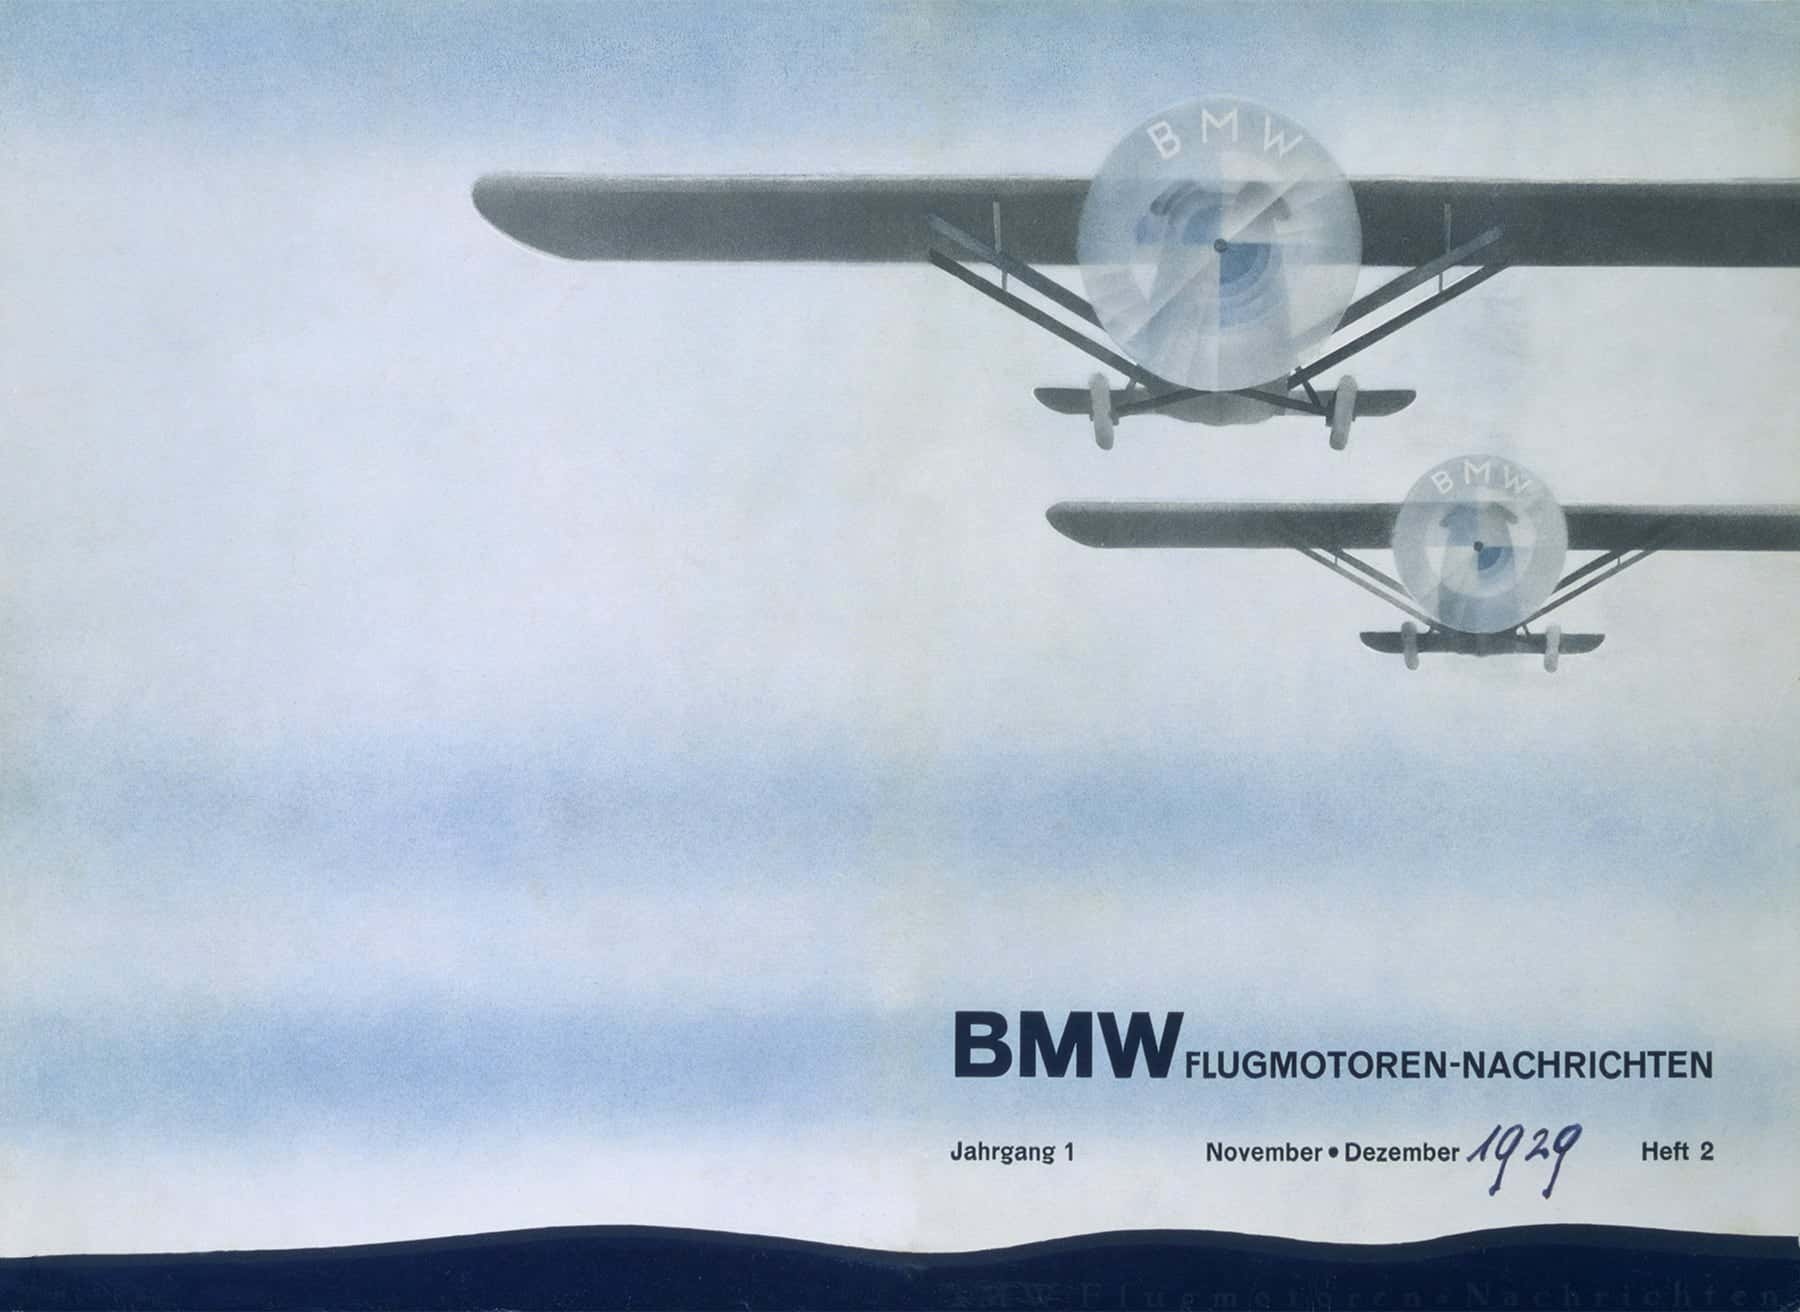 This Is What The Bmw Logo Really Means And No It S Not An Airplane Propeller